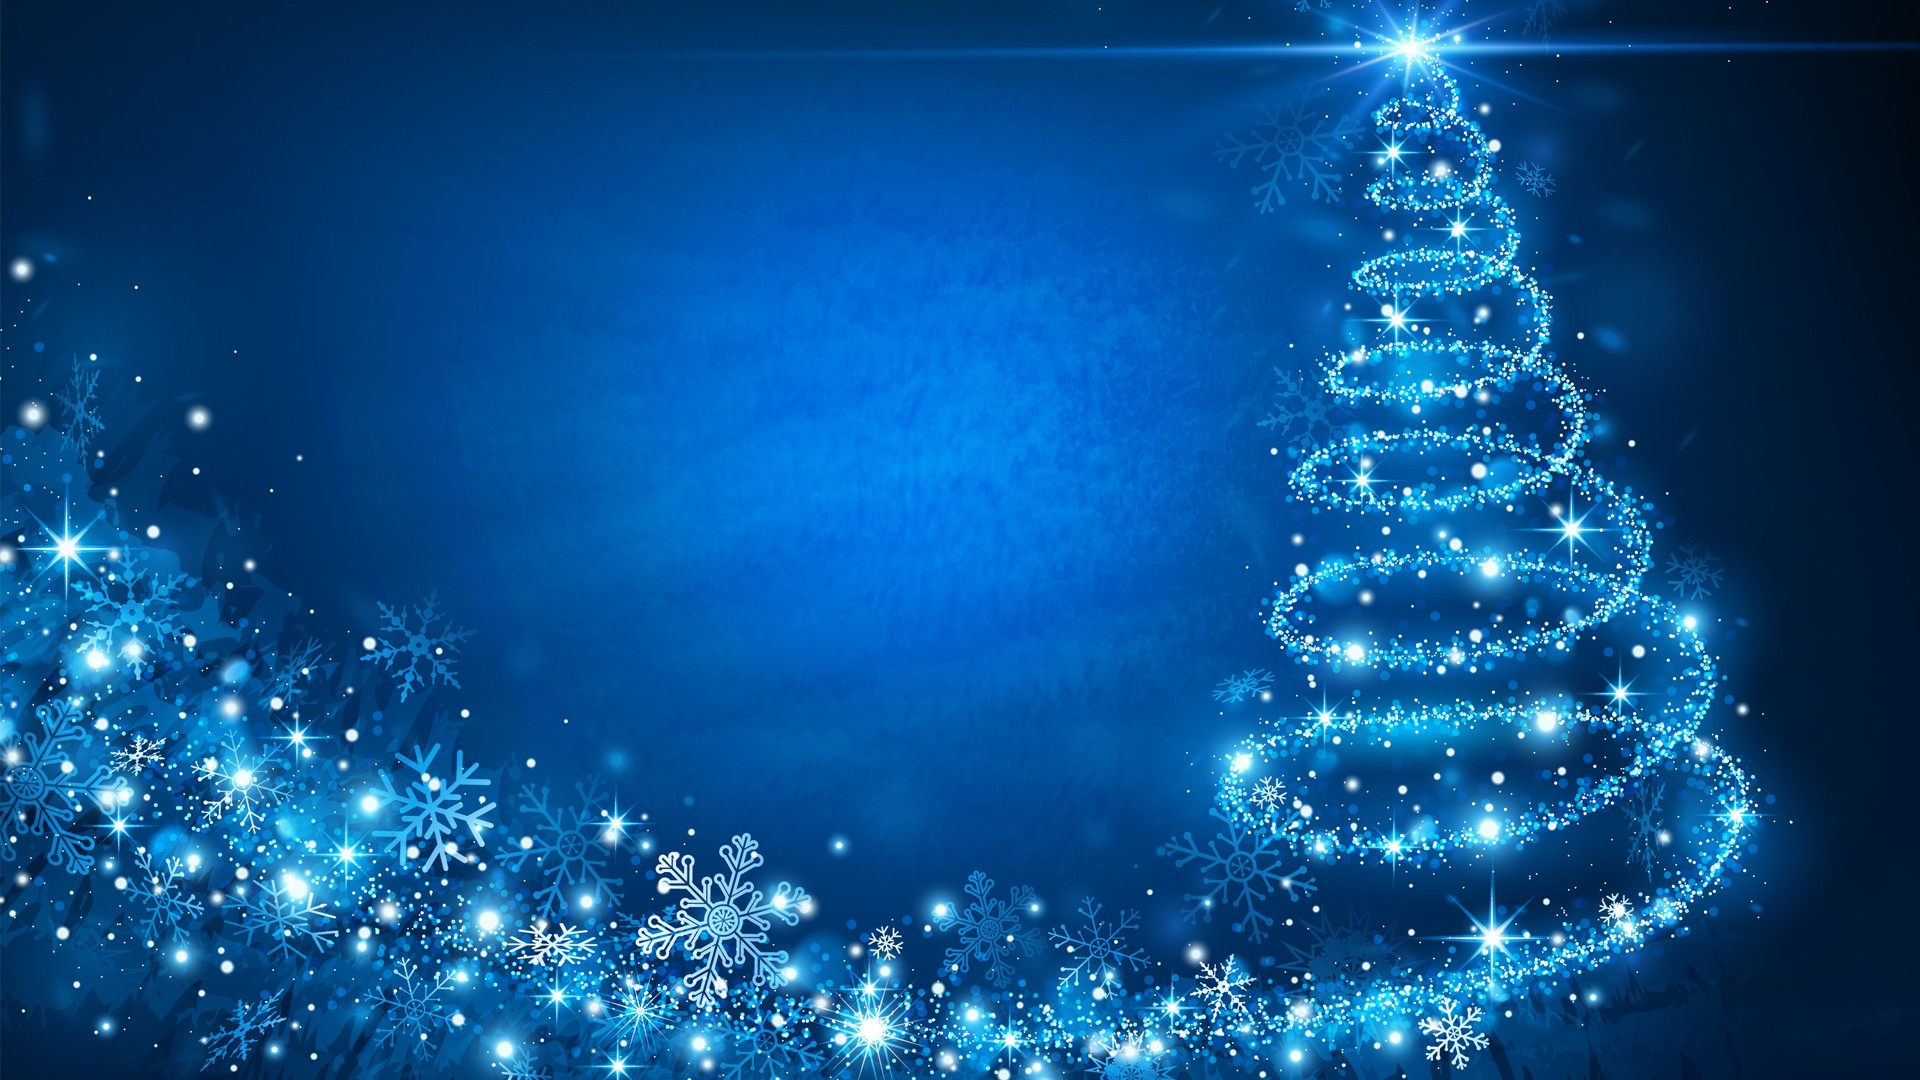 Blue Christmas Wallpaper HD 1920x1080